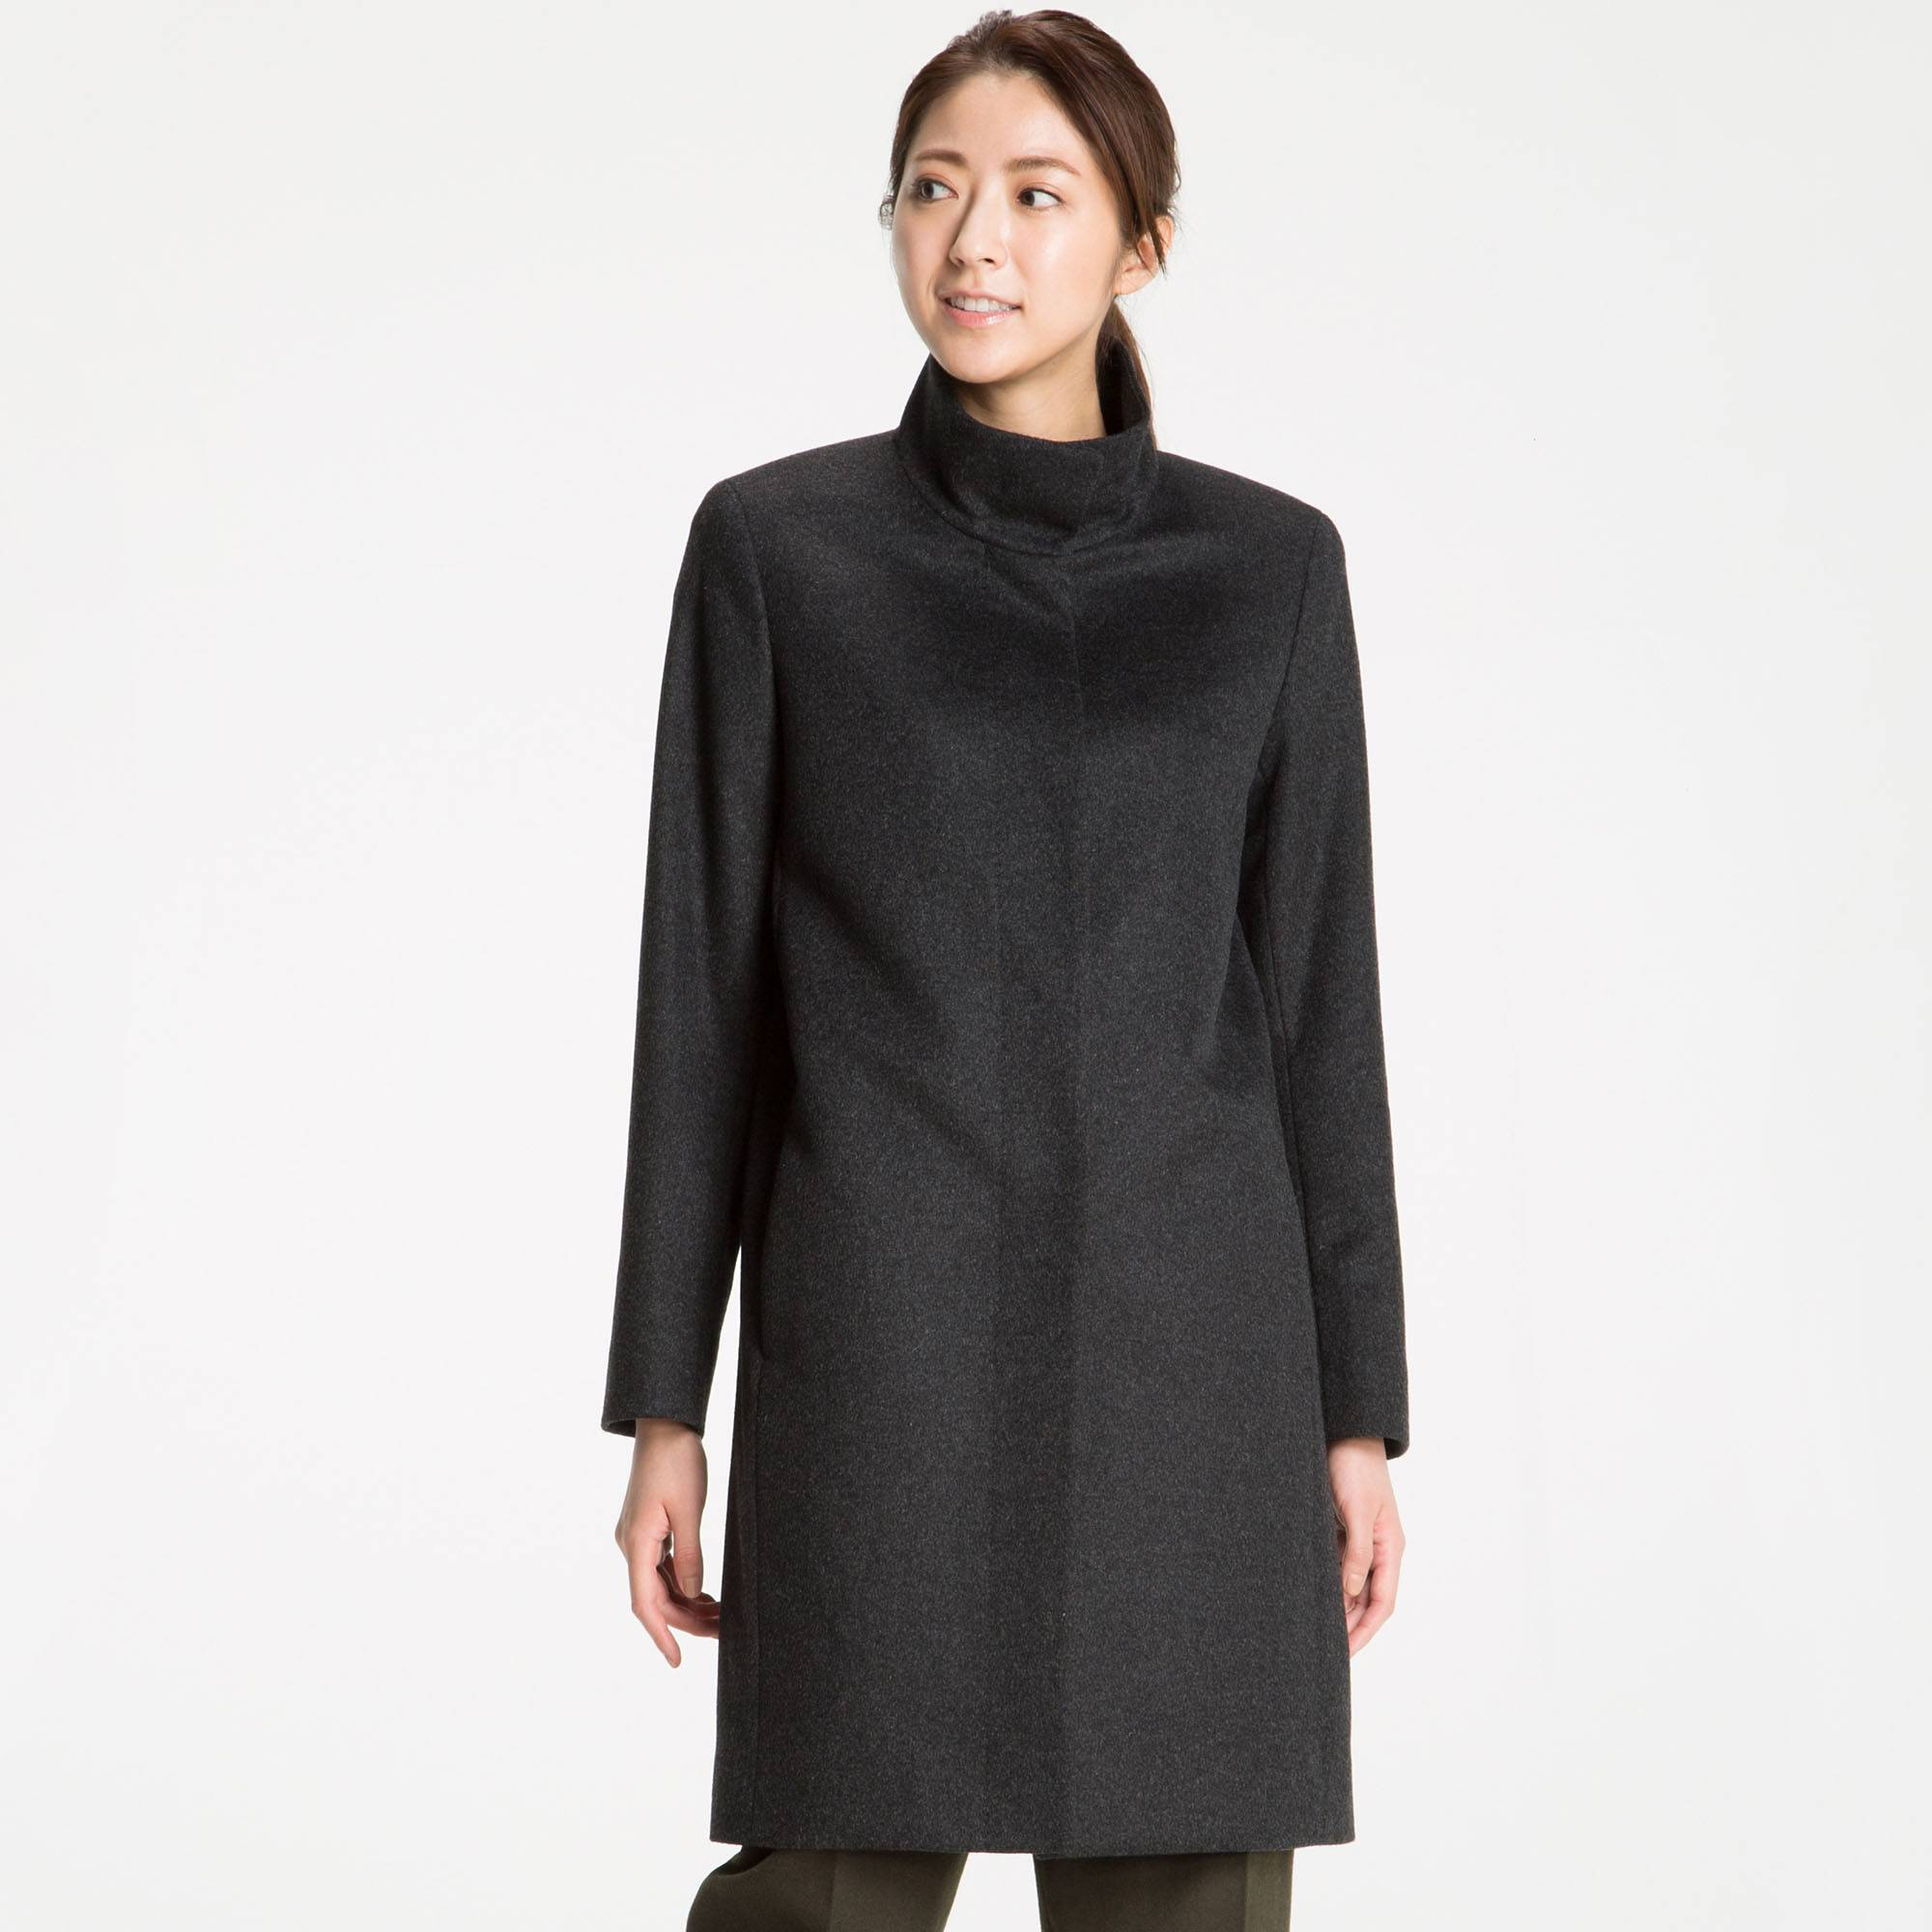 Uniqlo cashmere stand collar coat